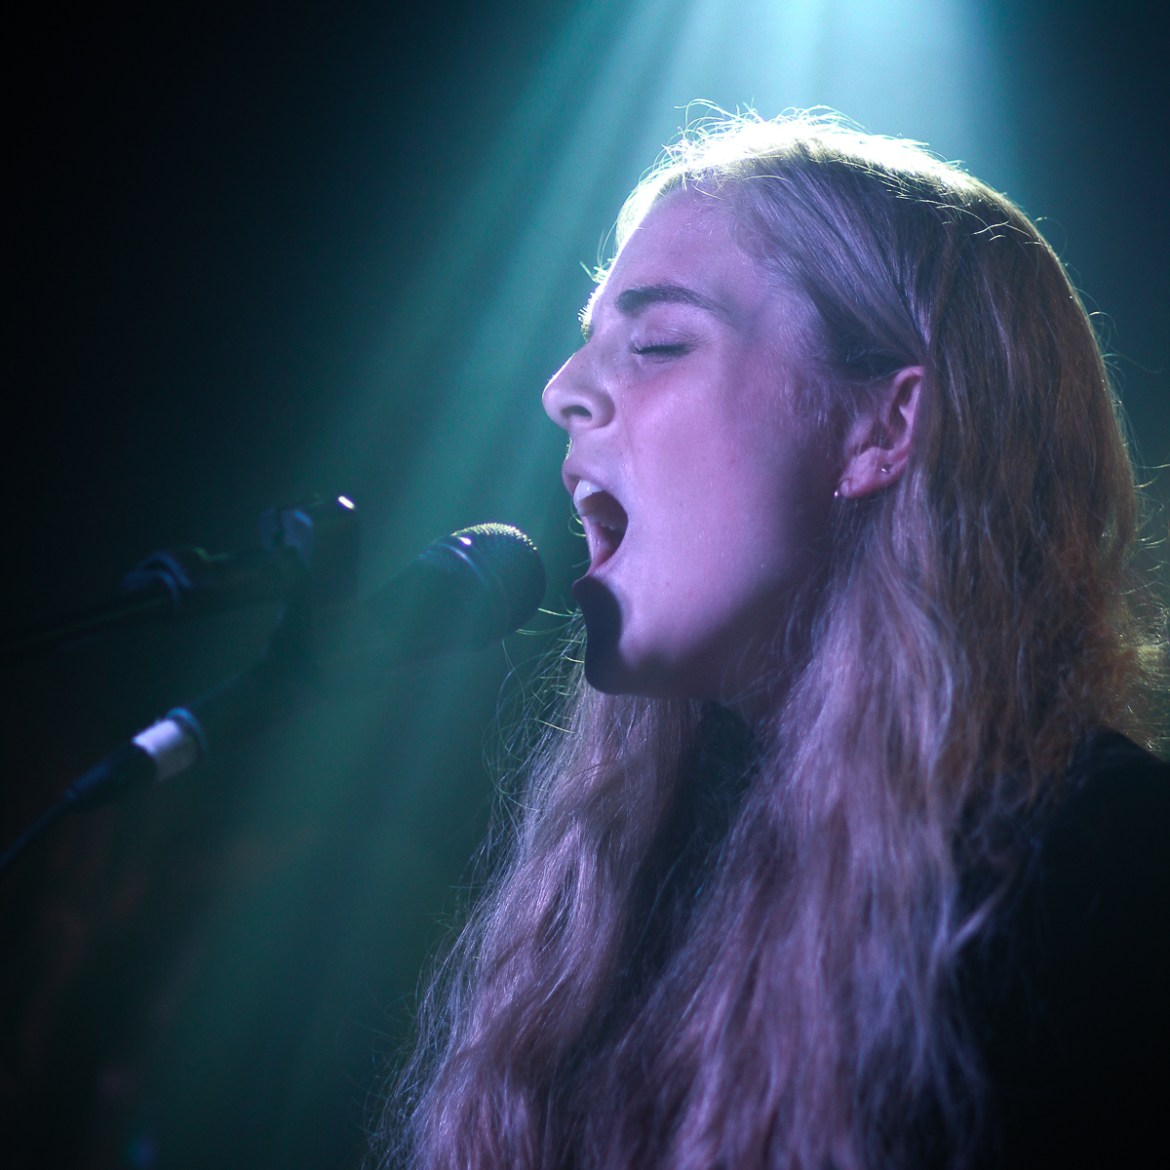 MarthaGunn playing BLOGTOBER at The Finsbury in London on 14.10.17